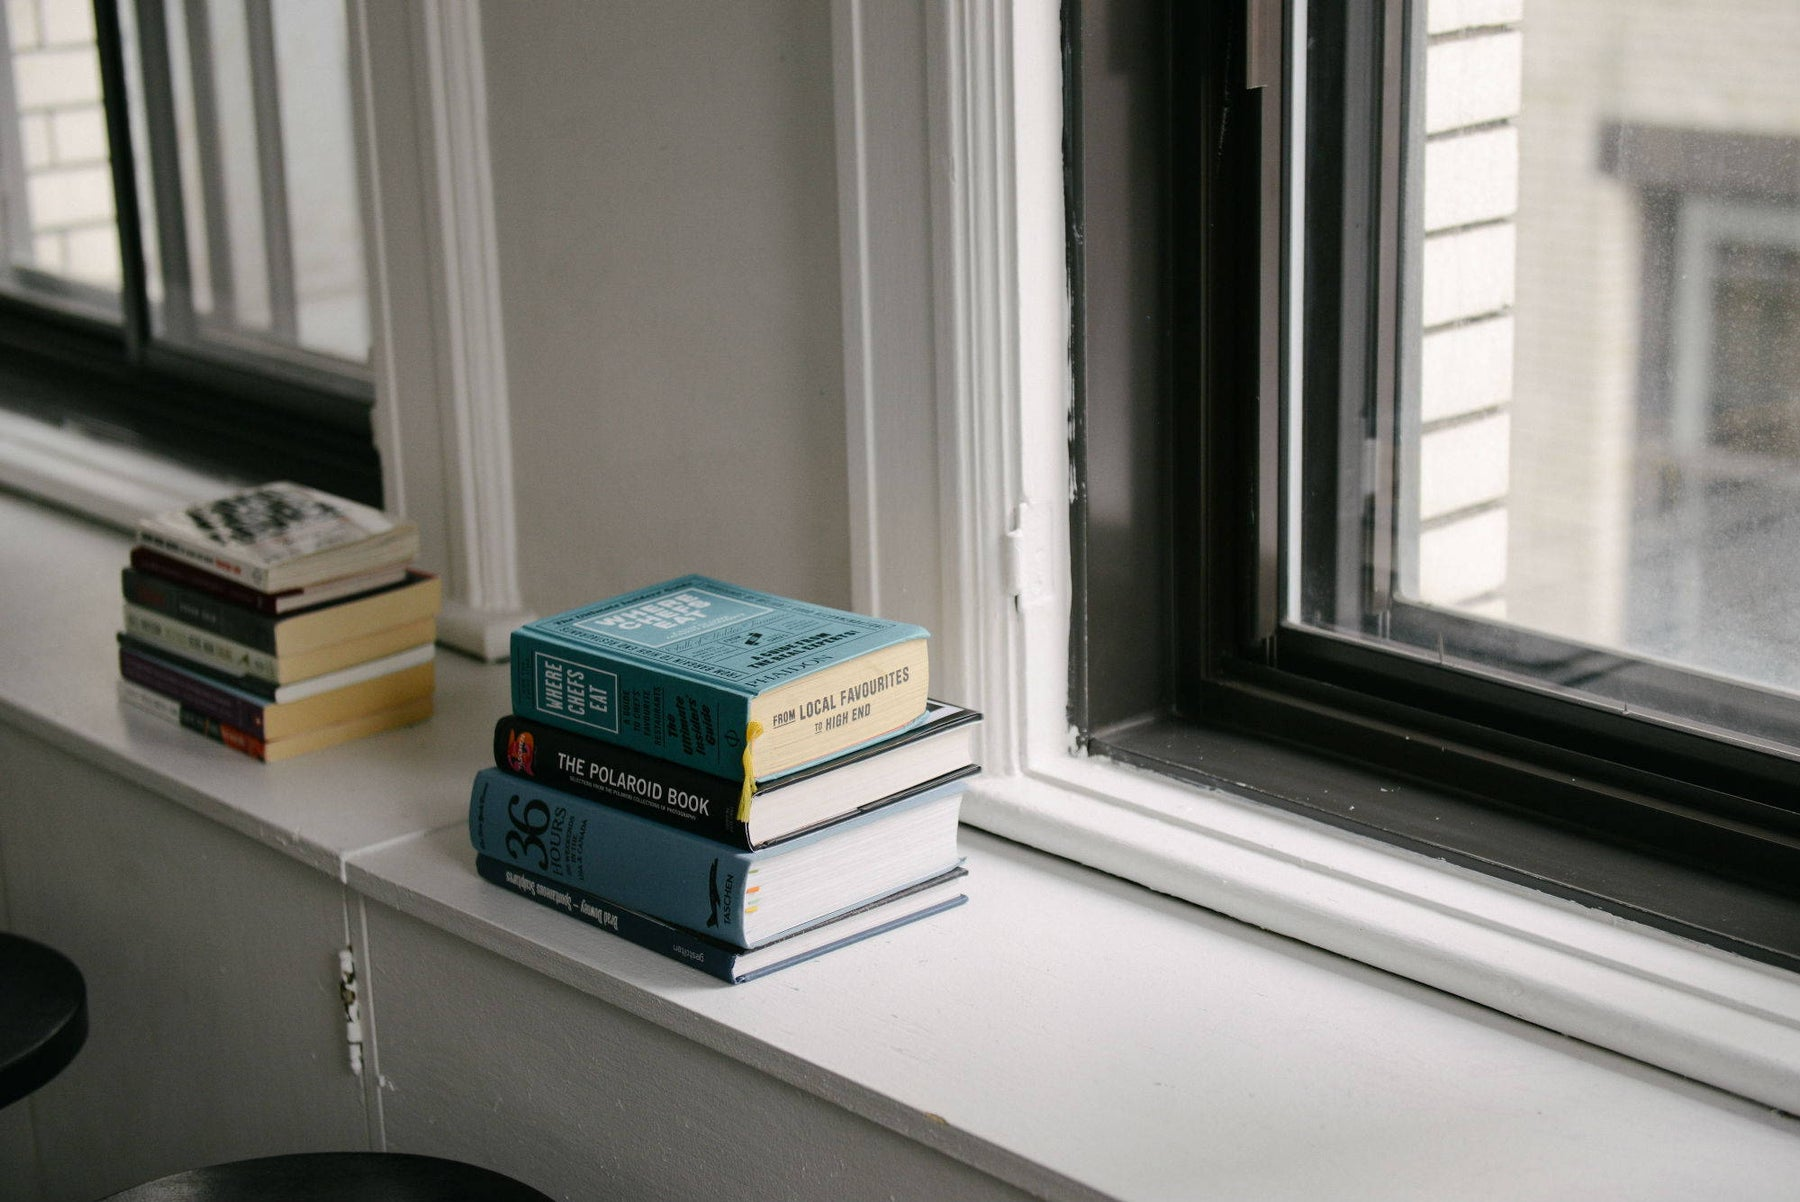 HOW TO CLEAN WINDOW SILLS